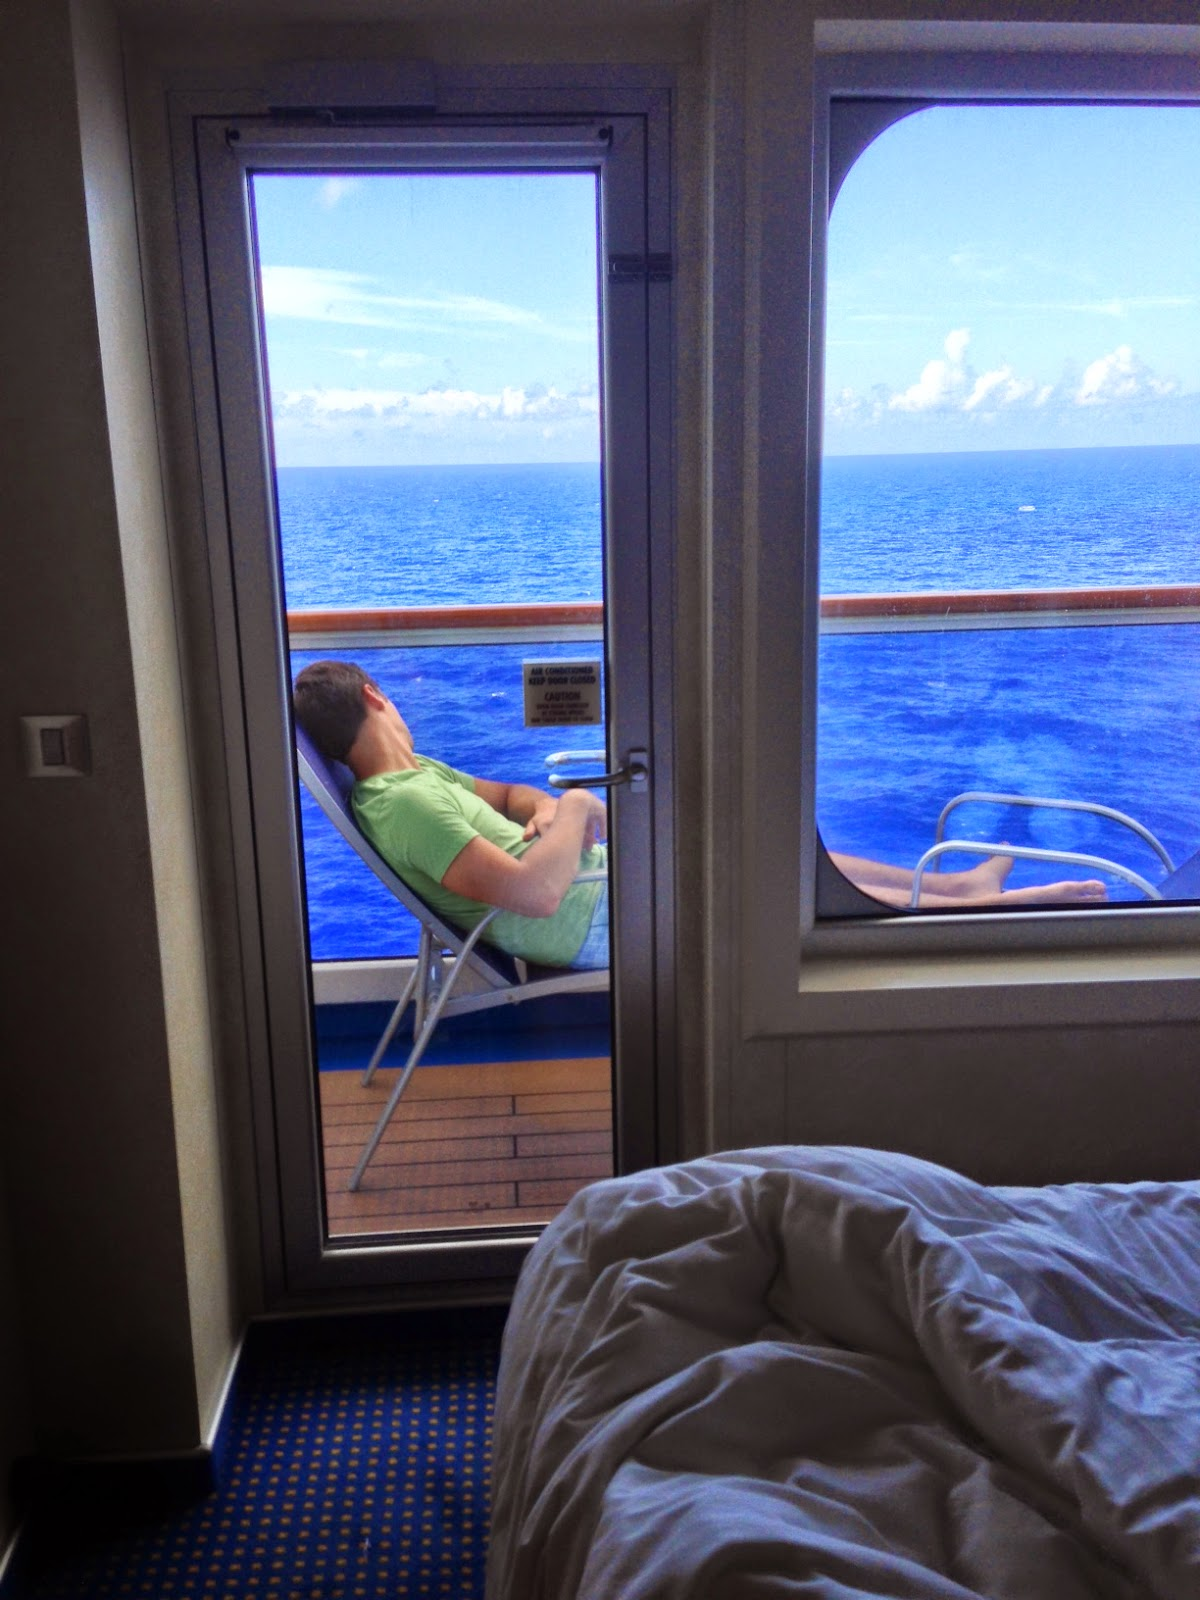 Life in the Barbie Dream House: Carnival Breeze Vacation Review!